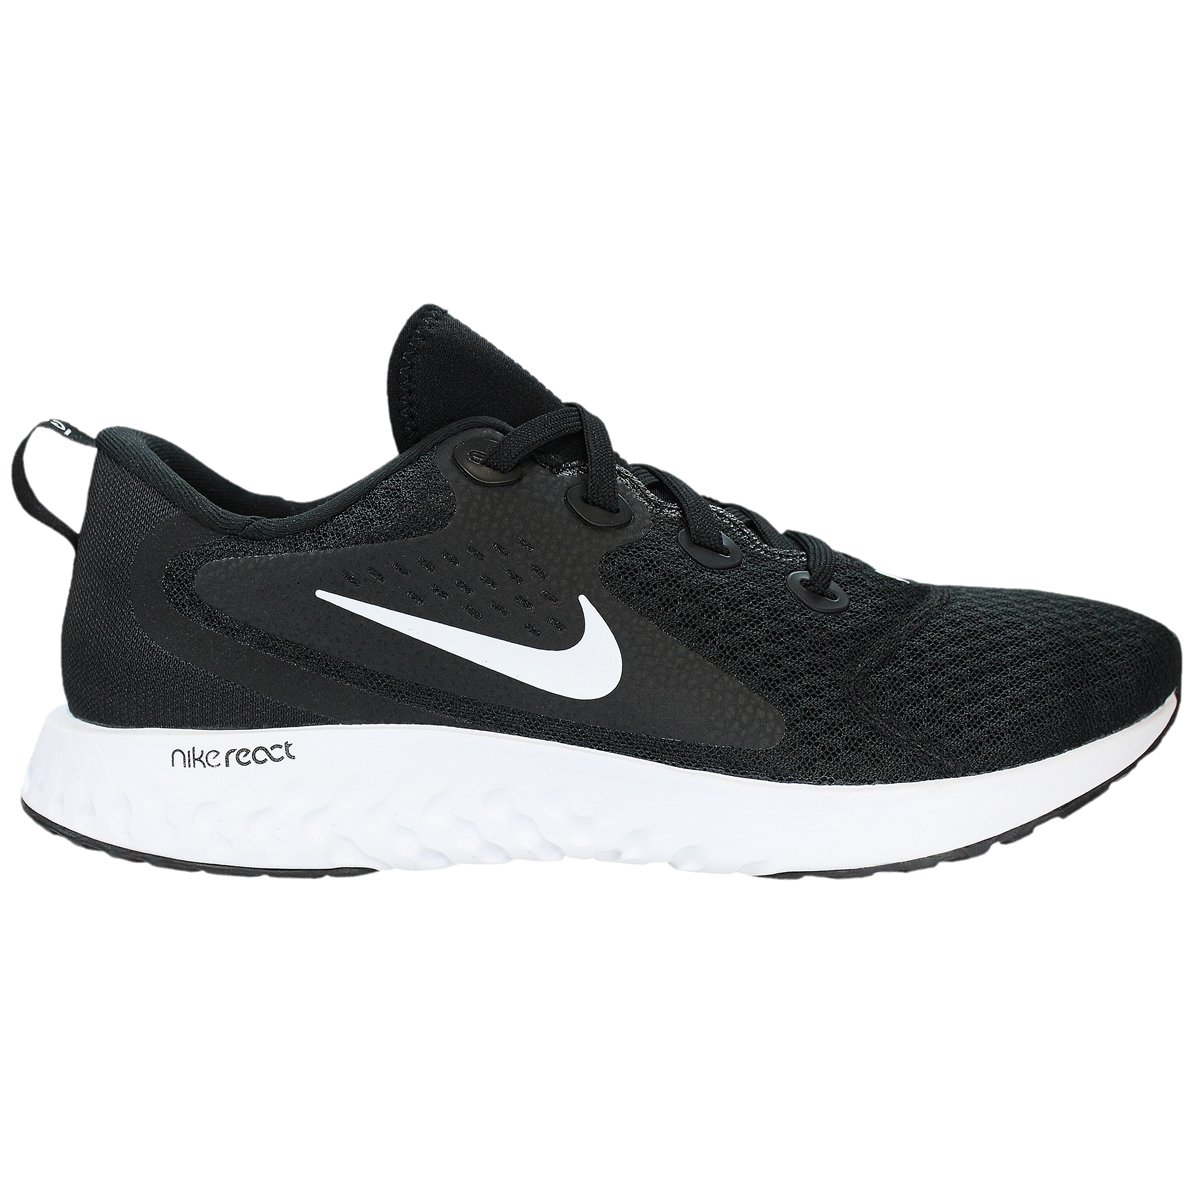 TÊNIS NIKE REBEL LEGEND REACT 3058d45b3b2fc